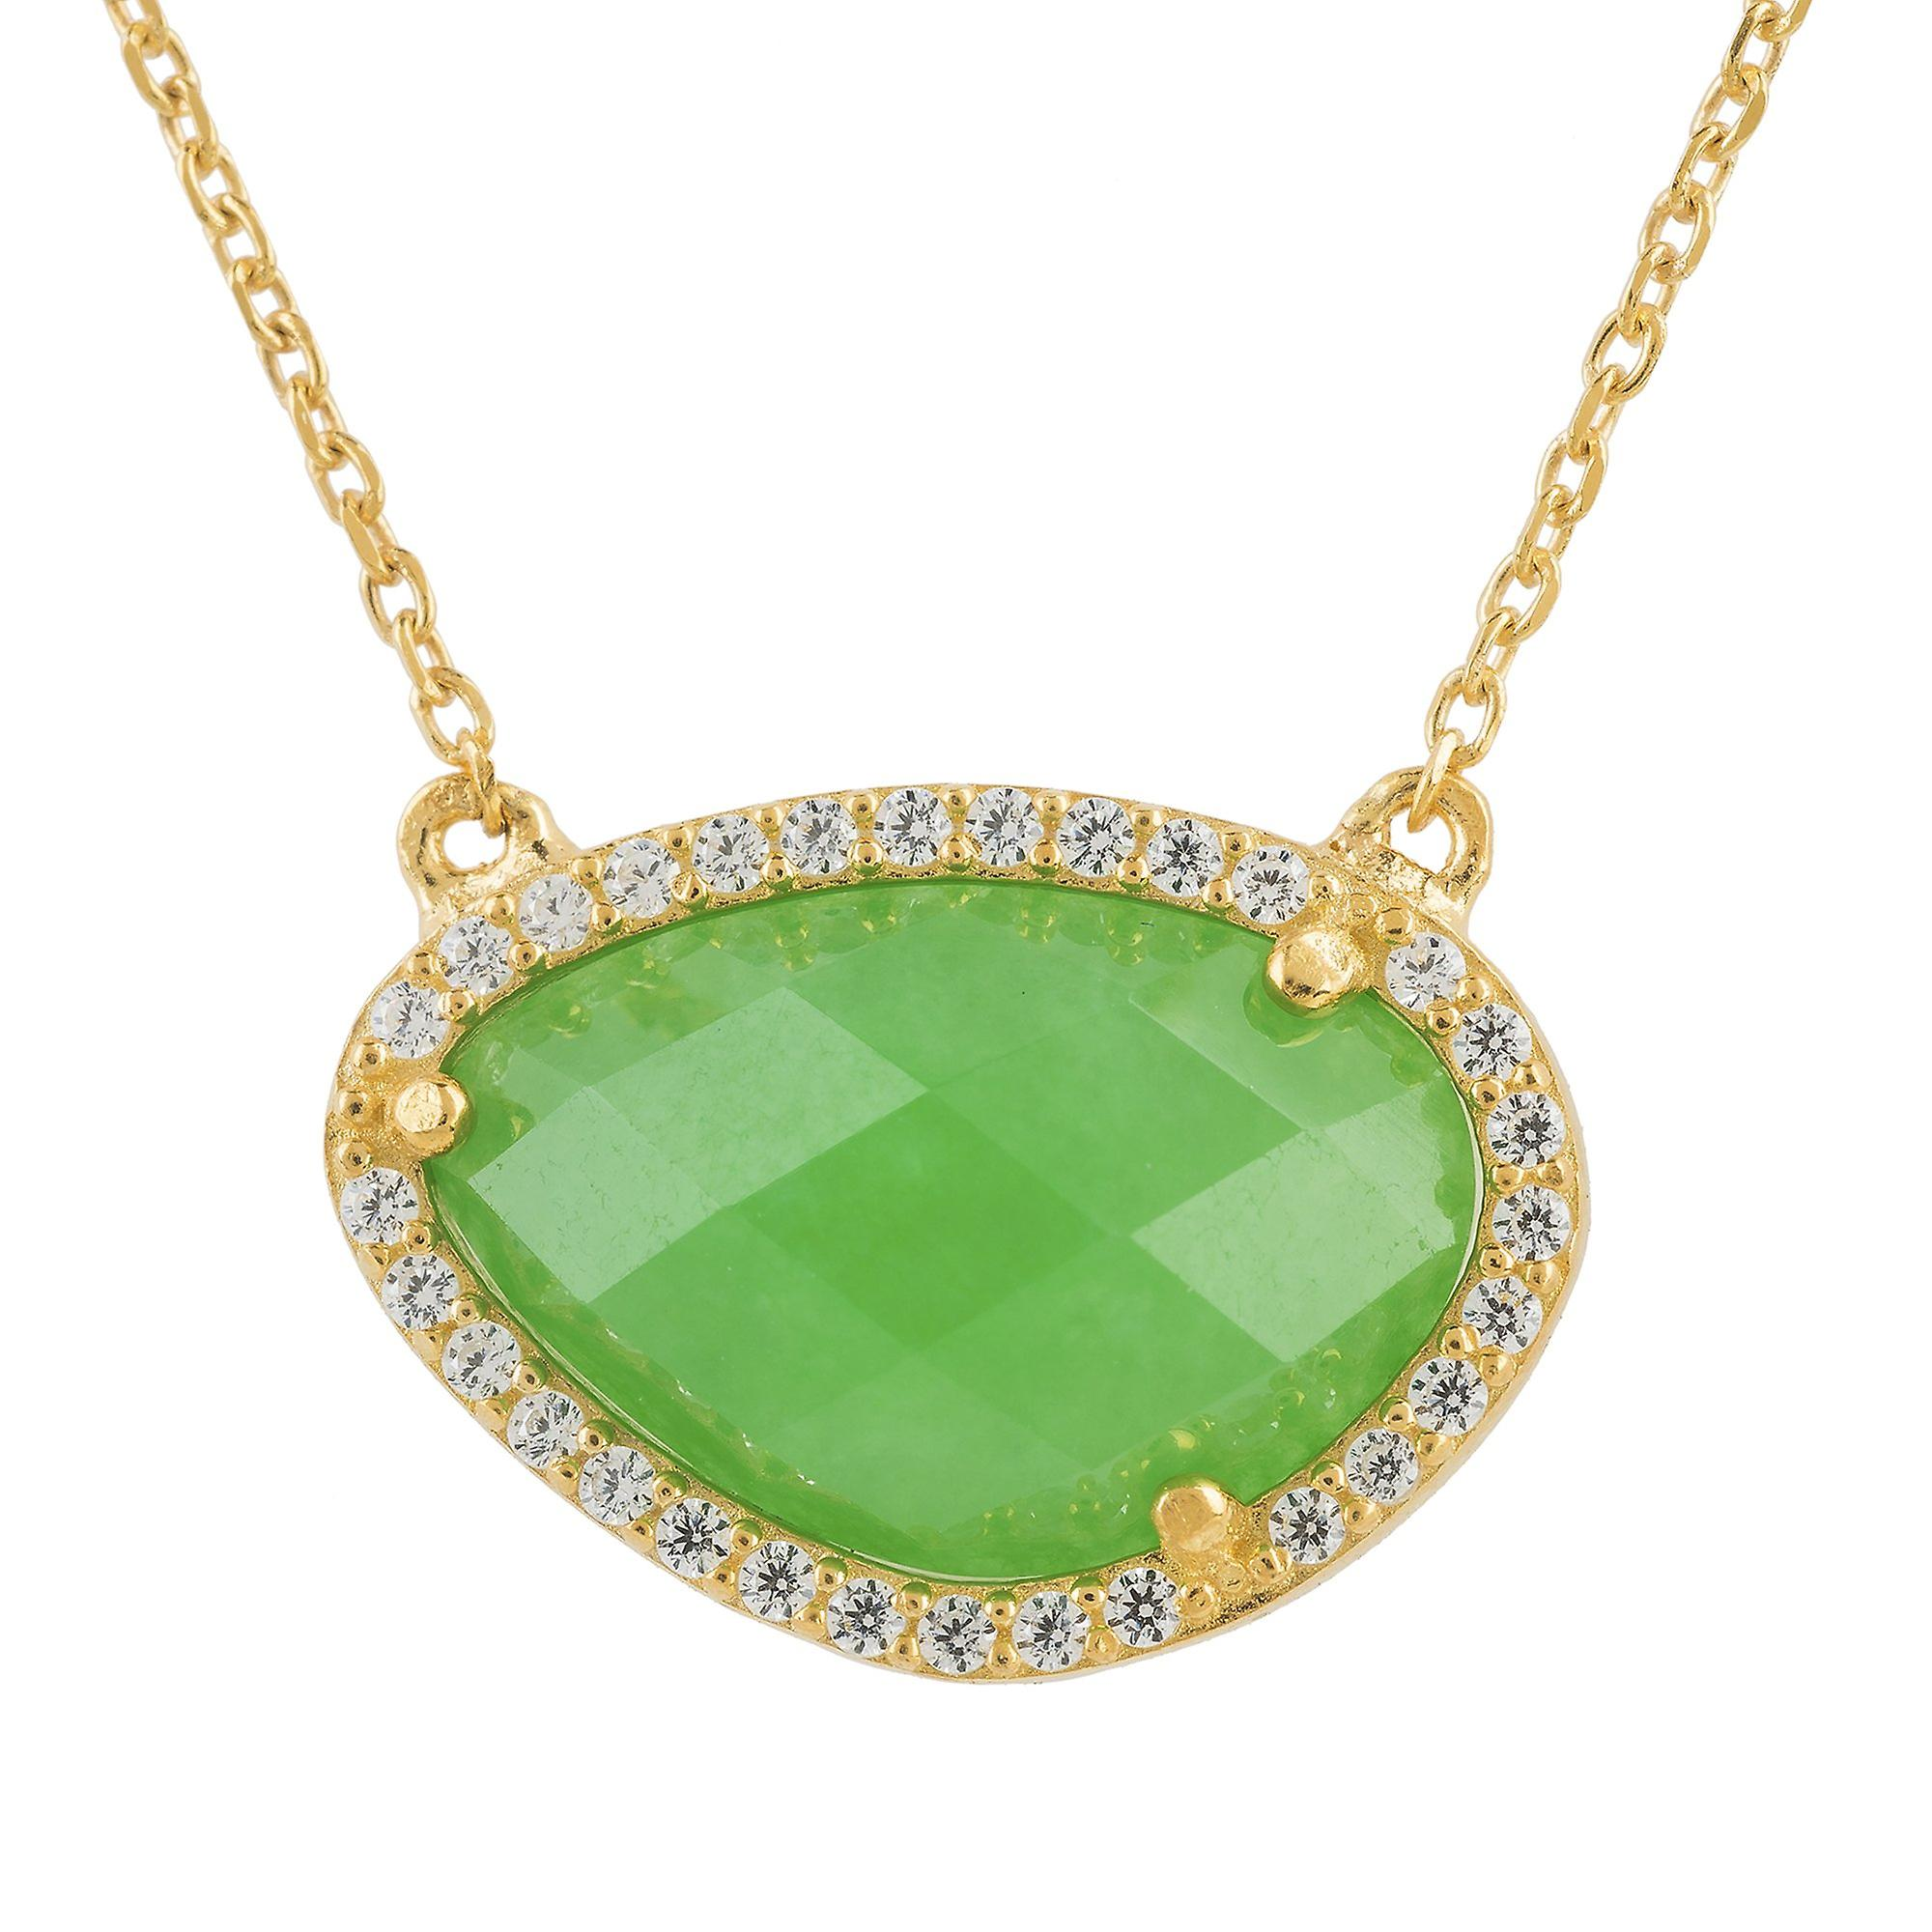 Latelita Dark Green Onyx Emerald Gemstone Pendant Necklace Gold Sterling Silver